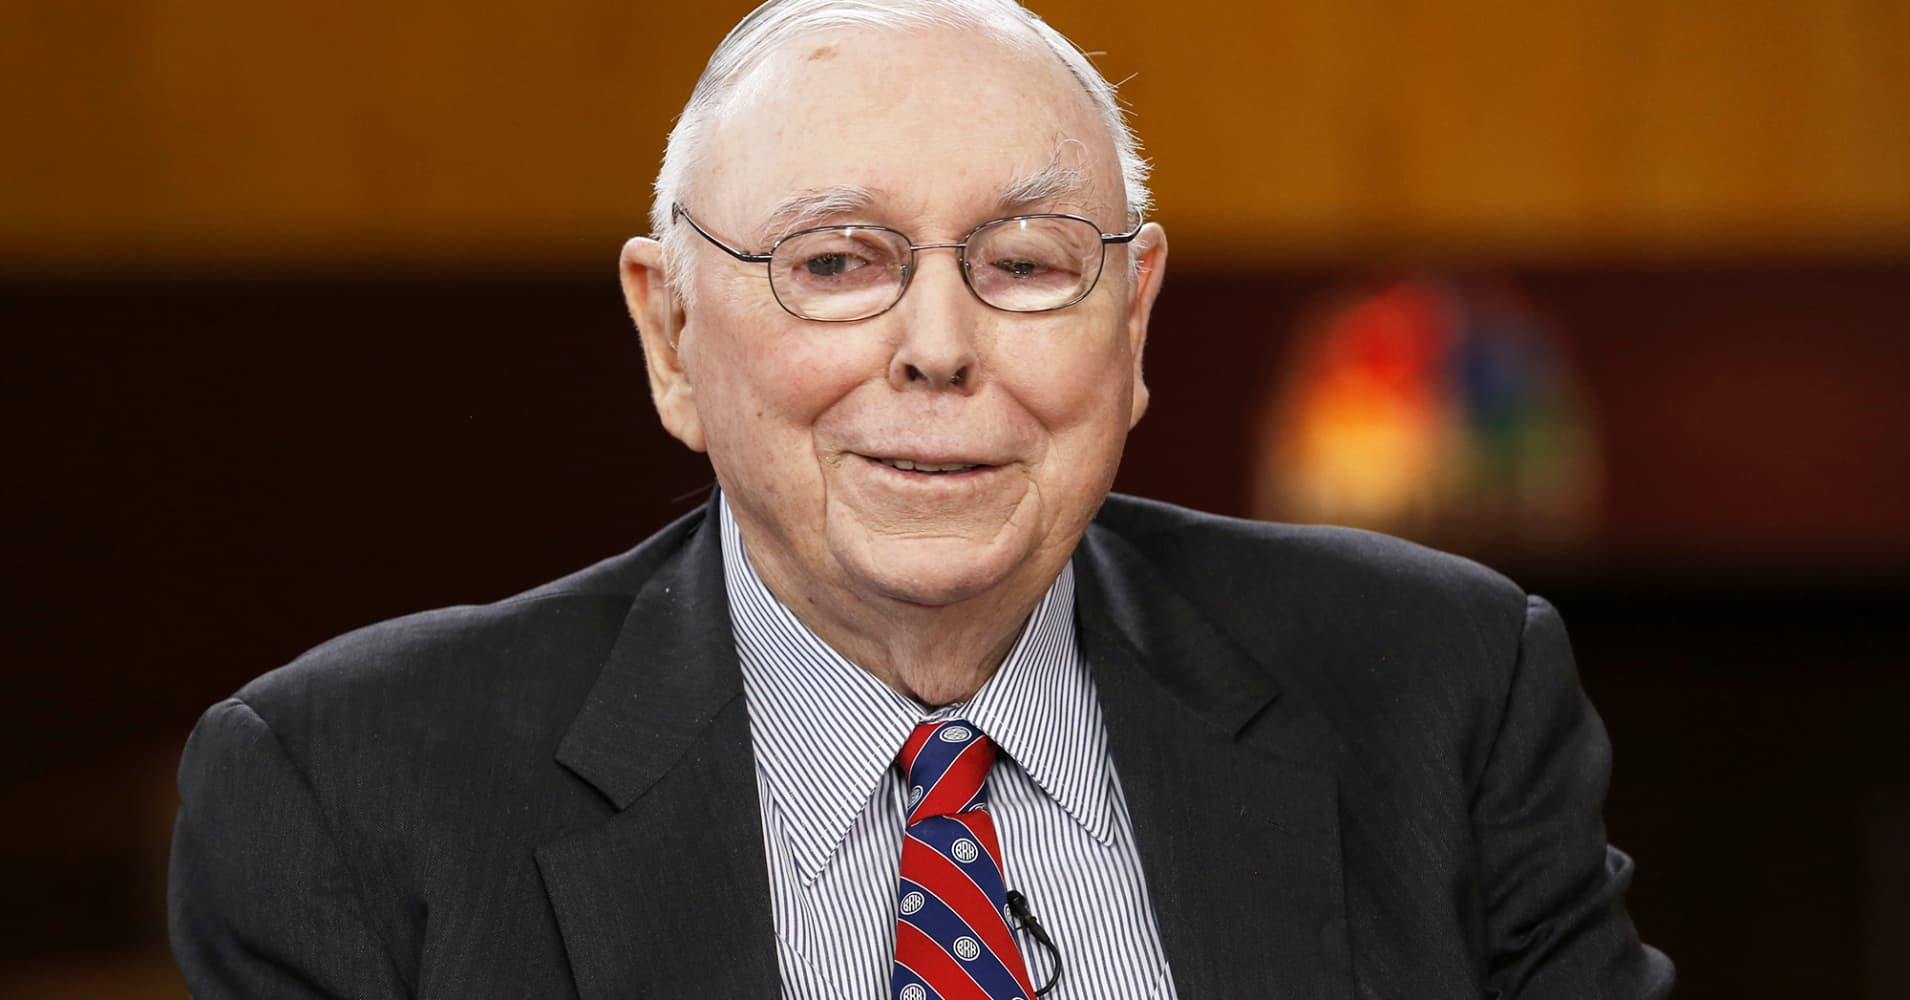 Watch: Charlie Munger speaks at the Daily Journal annual meeting